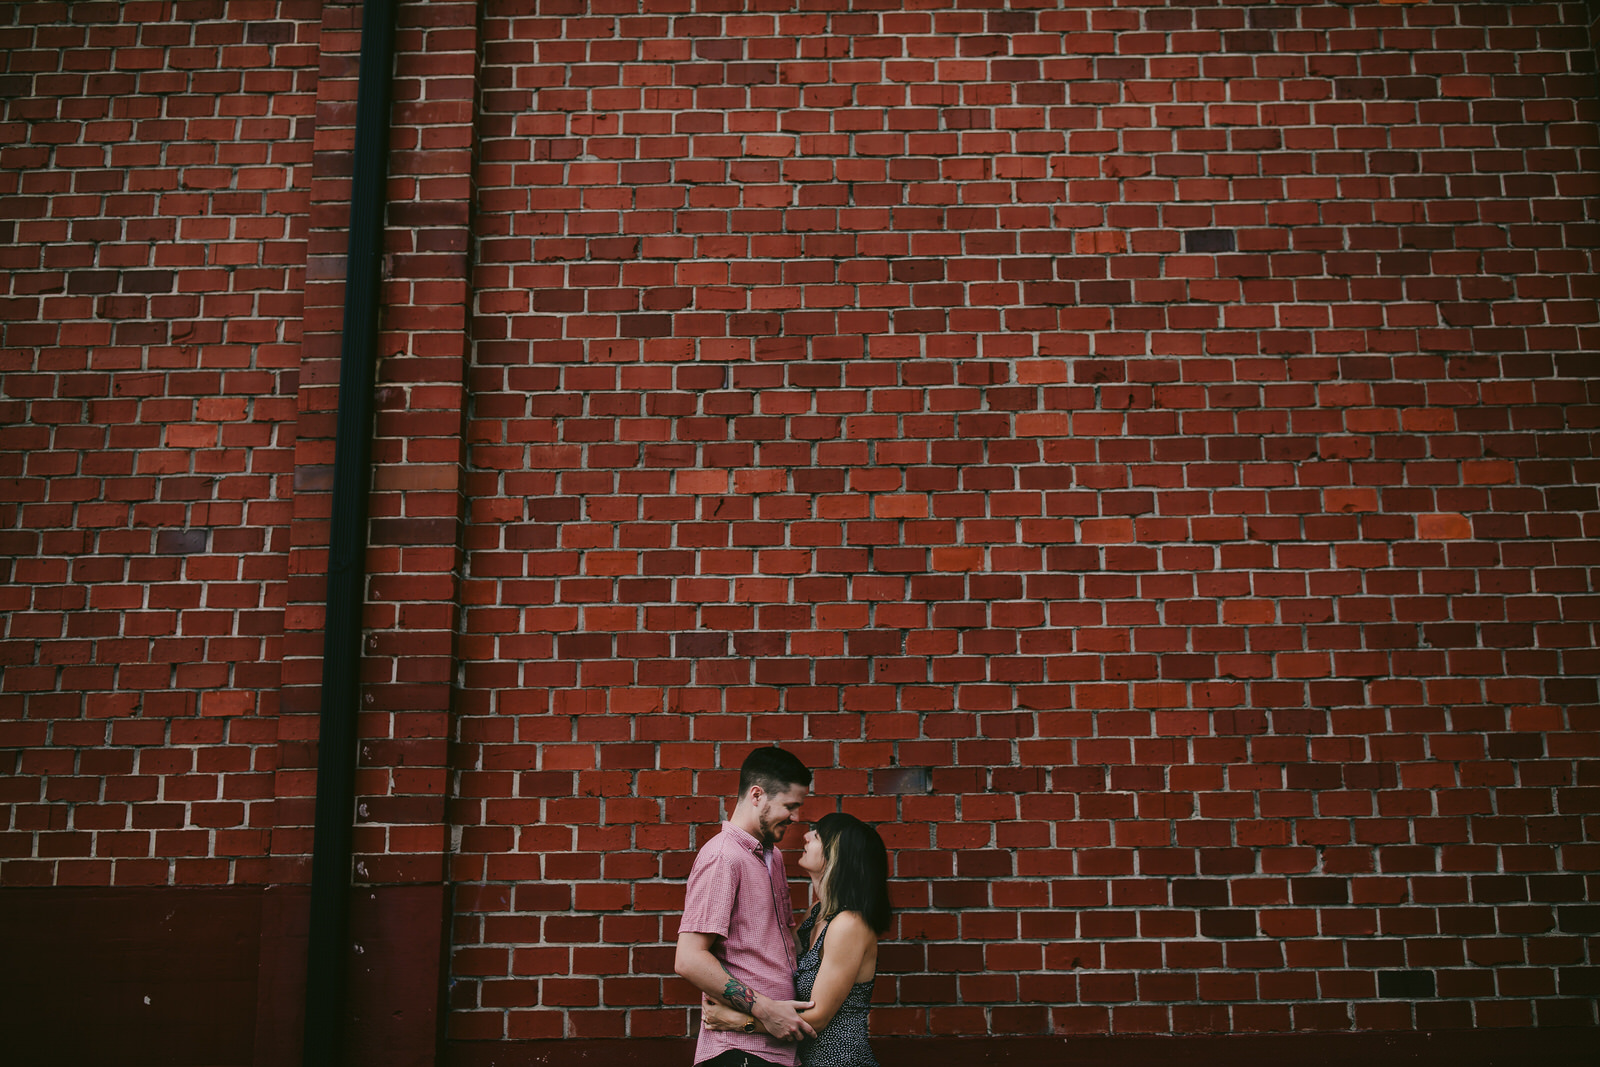 adorable-couples-session-jacksonville-florida-brick-wall-cute-indie-tattooed-couple-embracing-tiny-house-photo.jpg